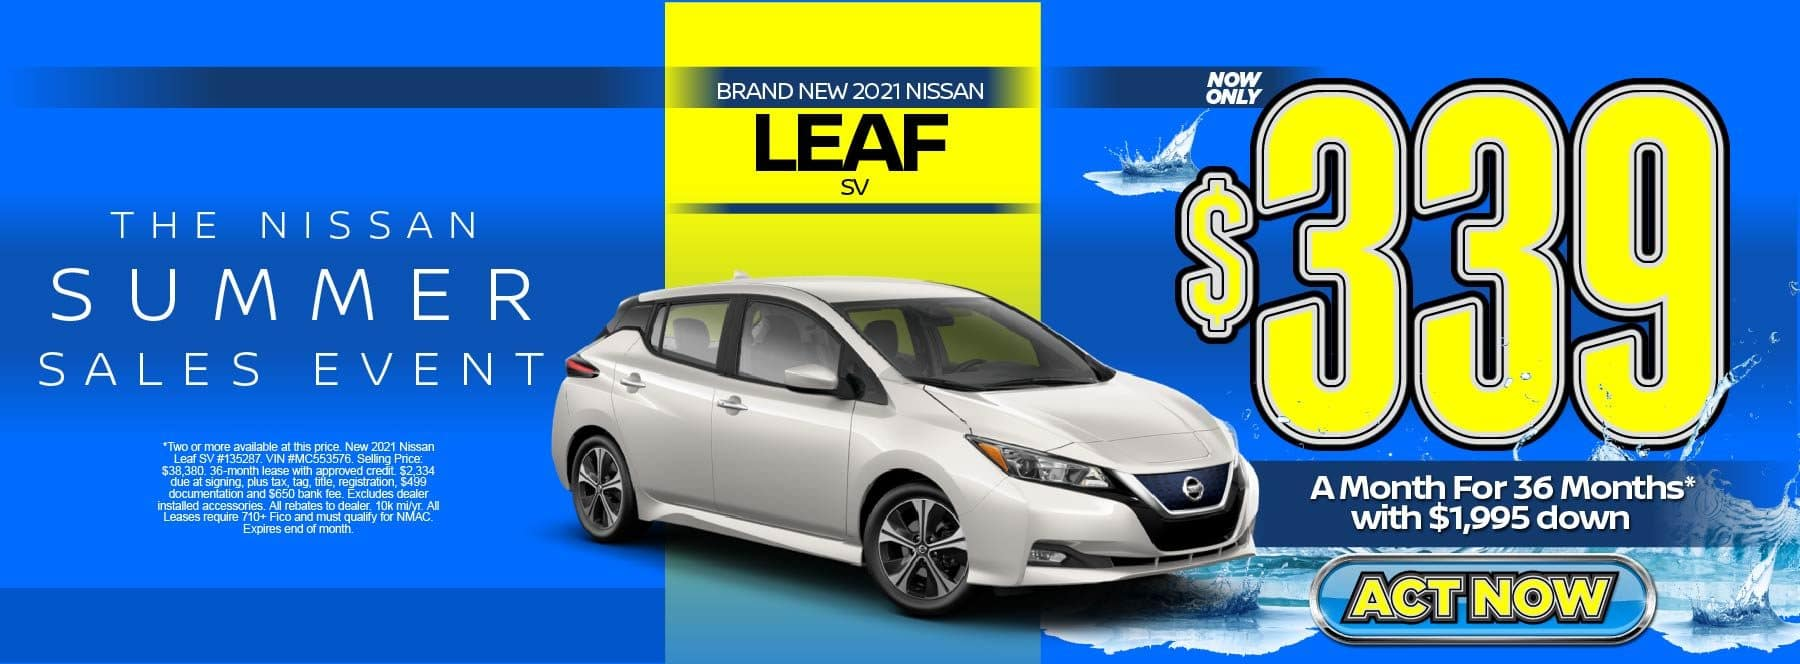 New 2021 Nissan Leaf SV – Lease for $339/mo for 36 months with $1,995 Down* Act now.